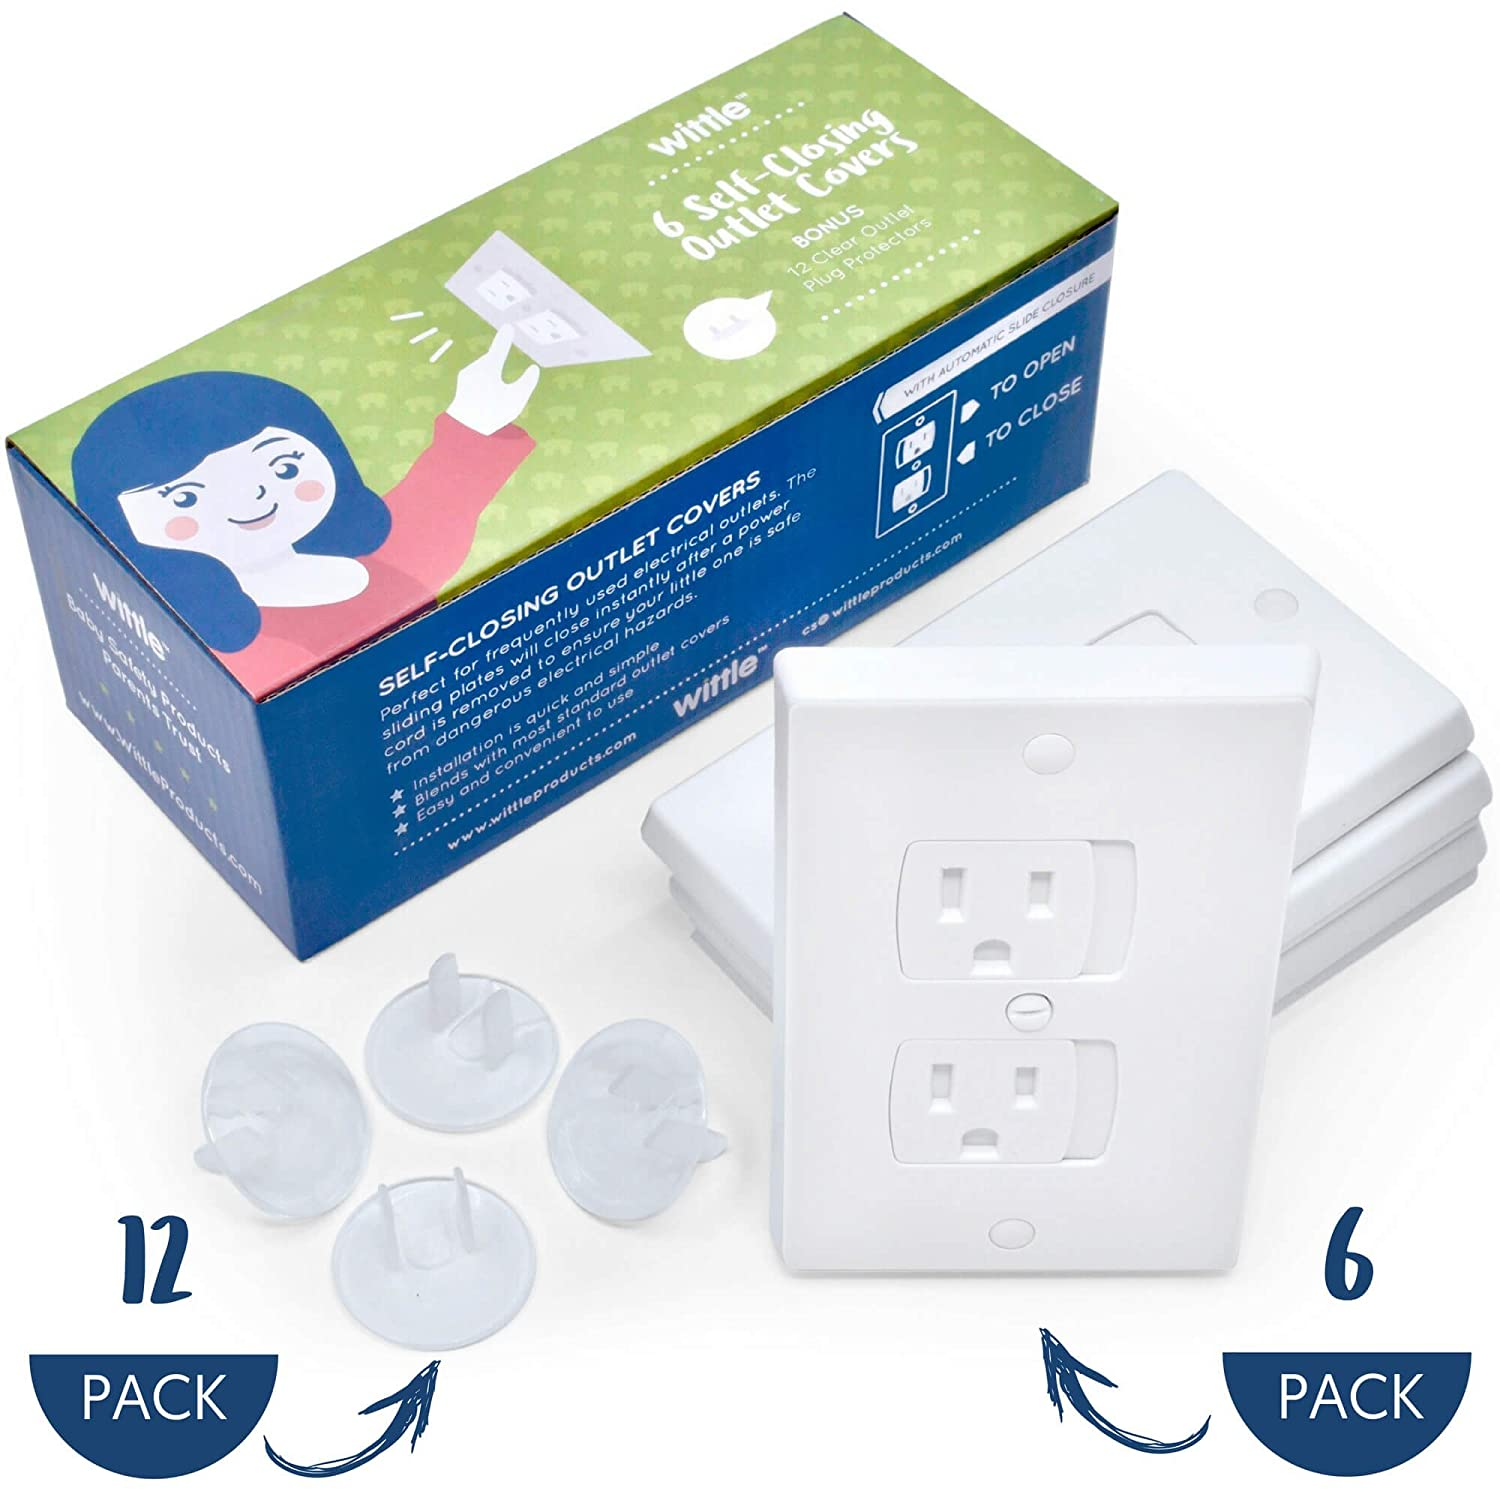 Wittle Self Closing Outlet Covers (6 White) Plus 12 Clear Plug Cover Outlet Protectors | Baby Proofing Outlets with Electrical Child Safety Kit! Ultaca WI-OCP-6P12